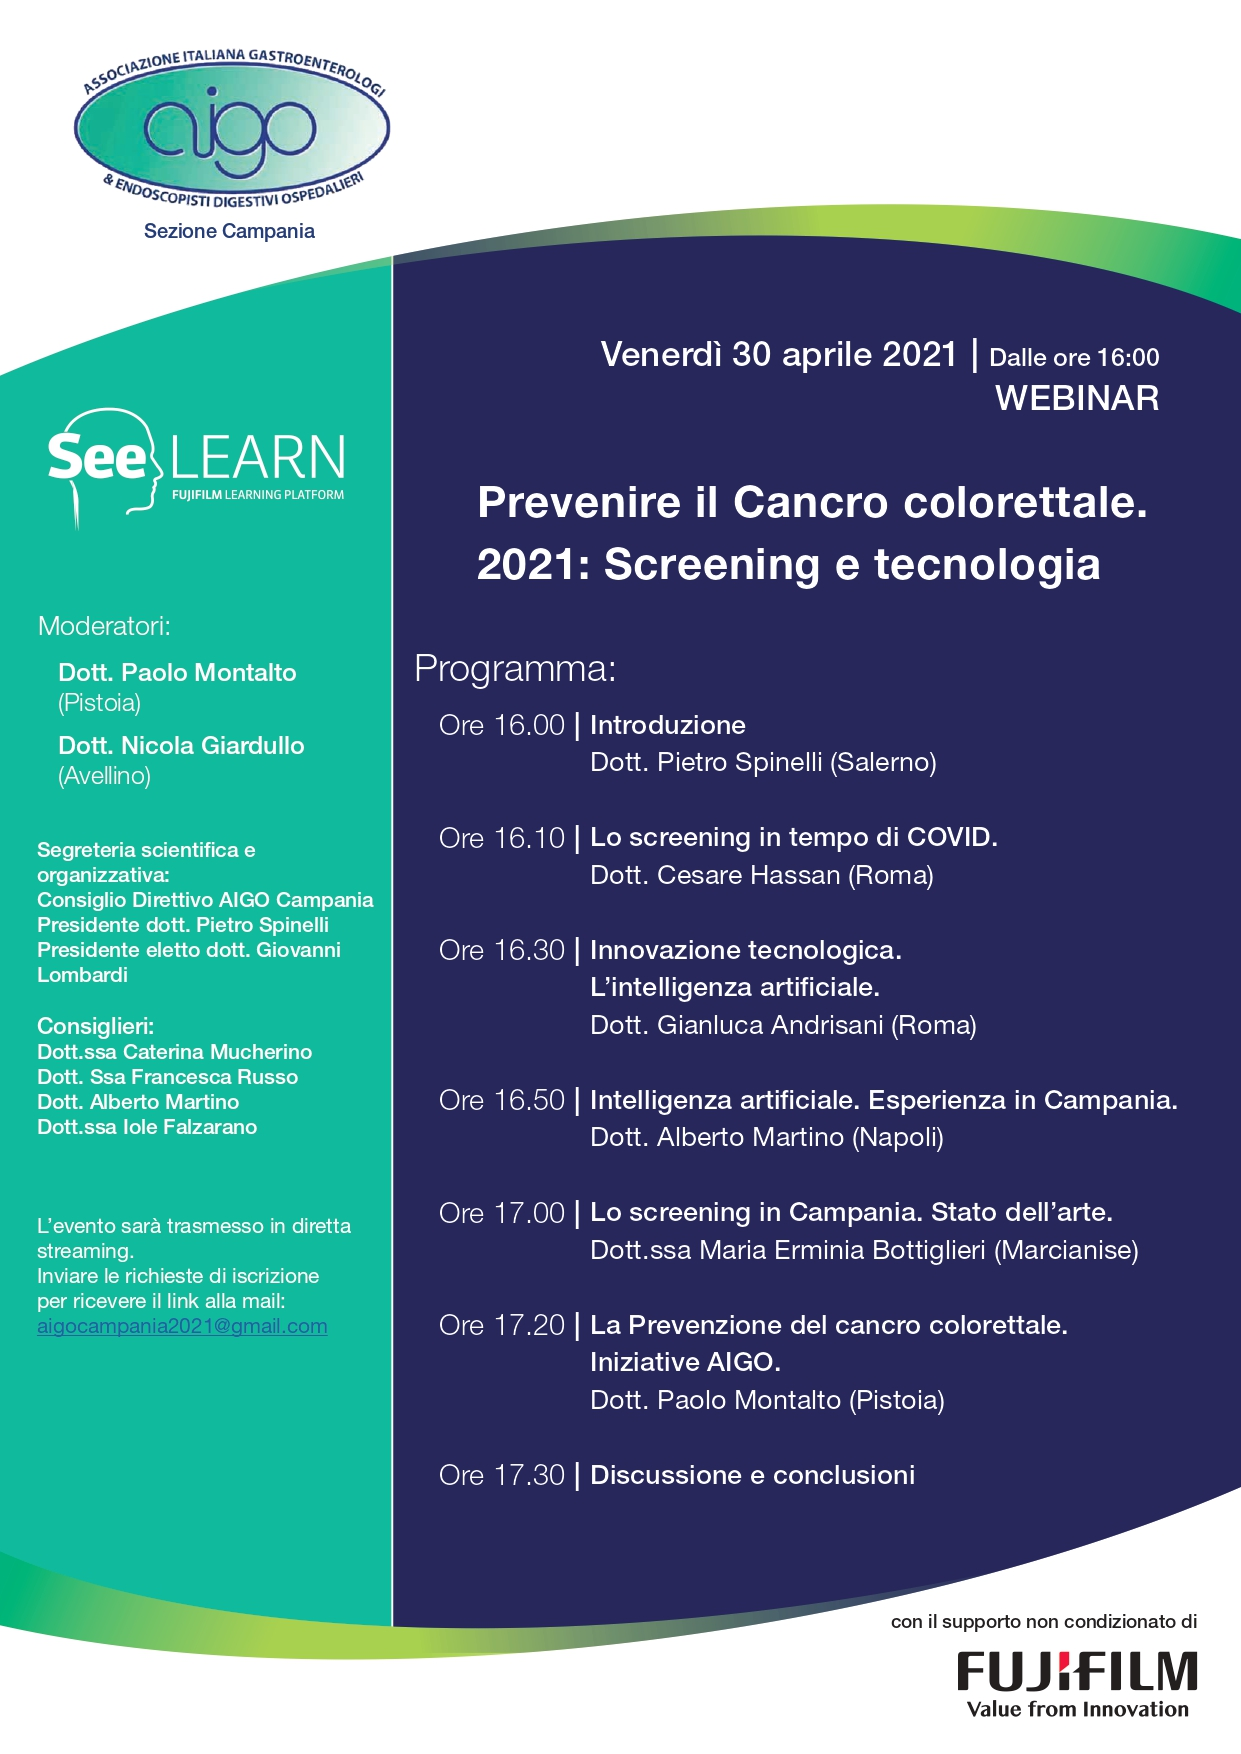 Prevenire il cancro colorettale. 2021: Screening e tecnologia